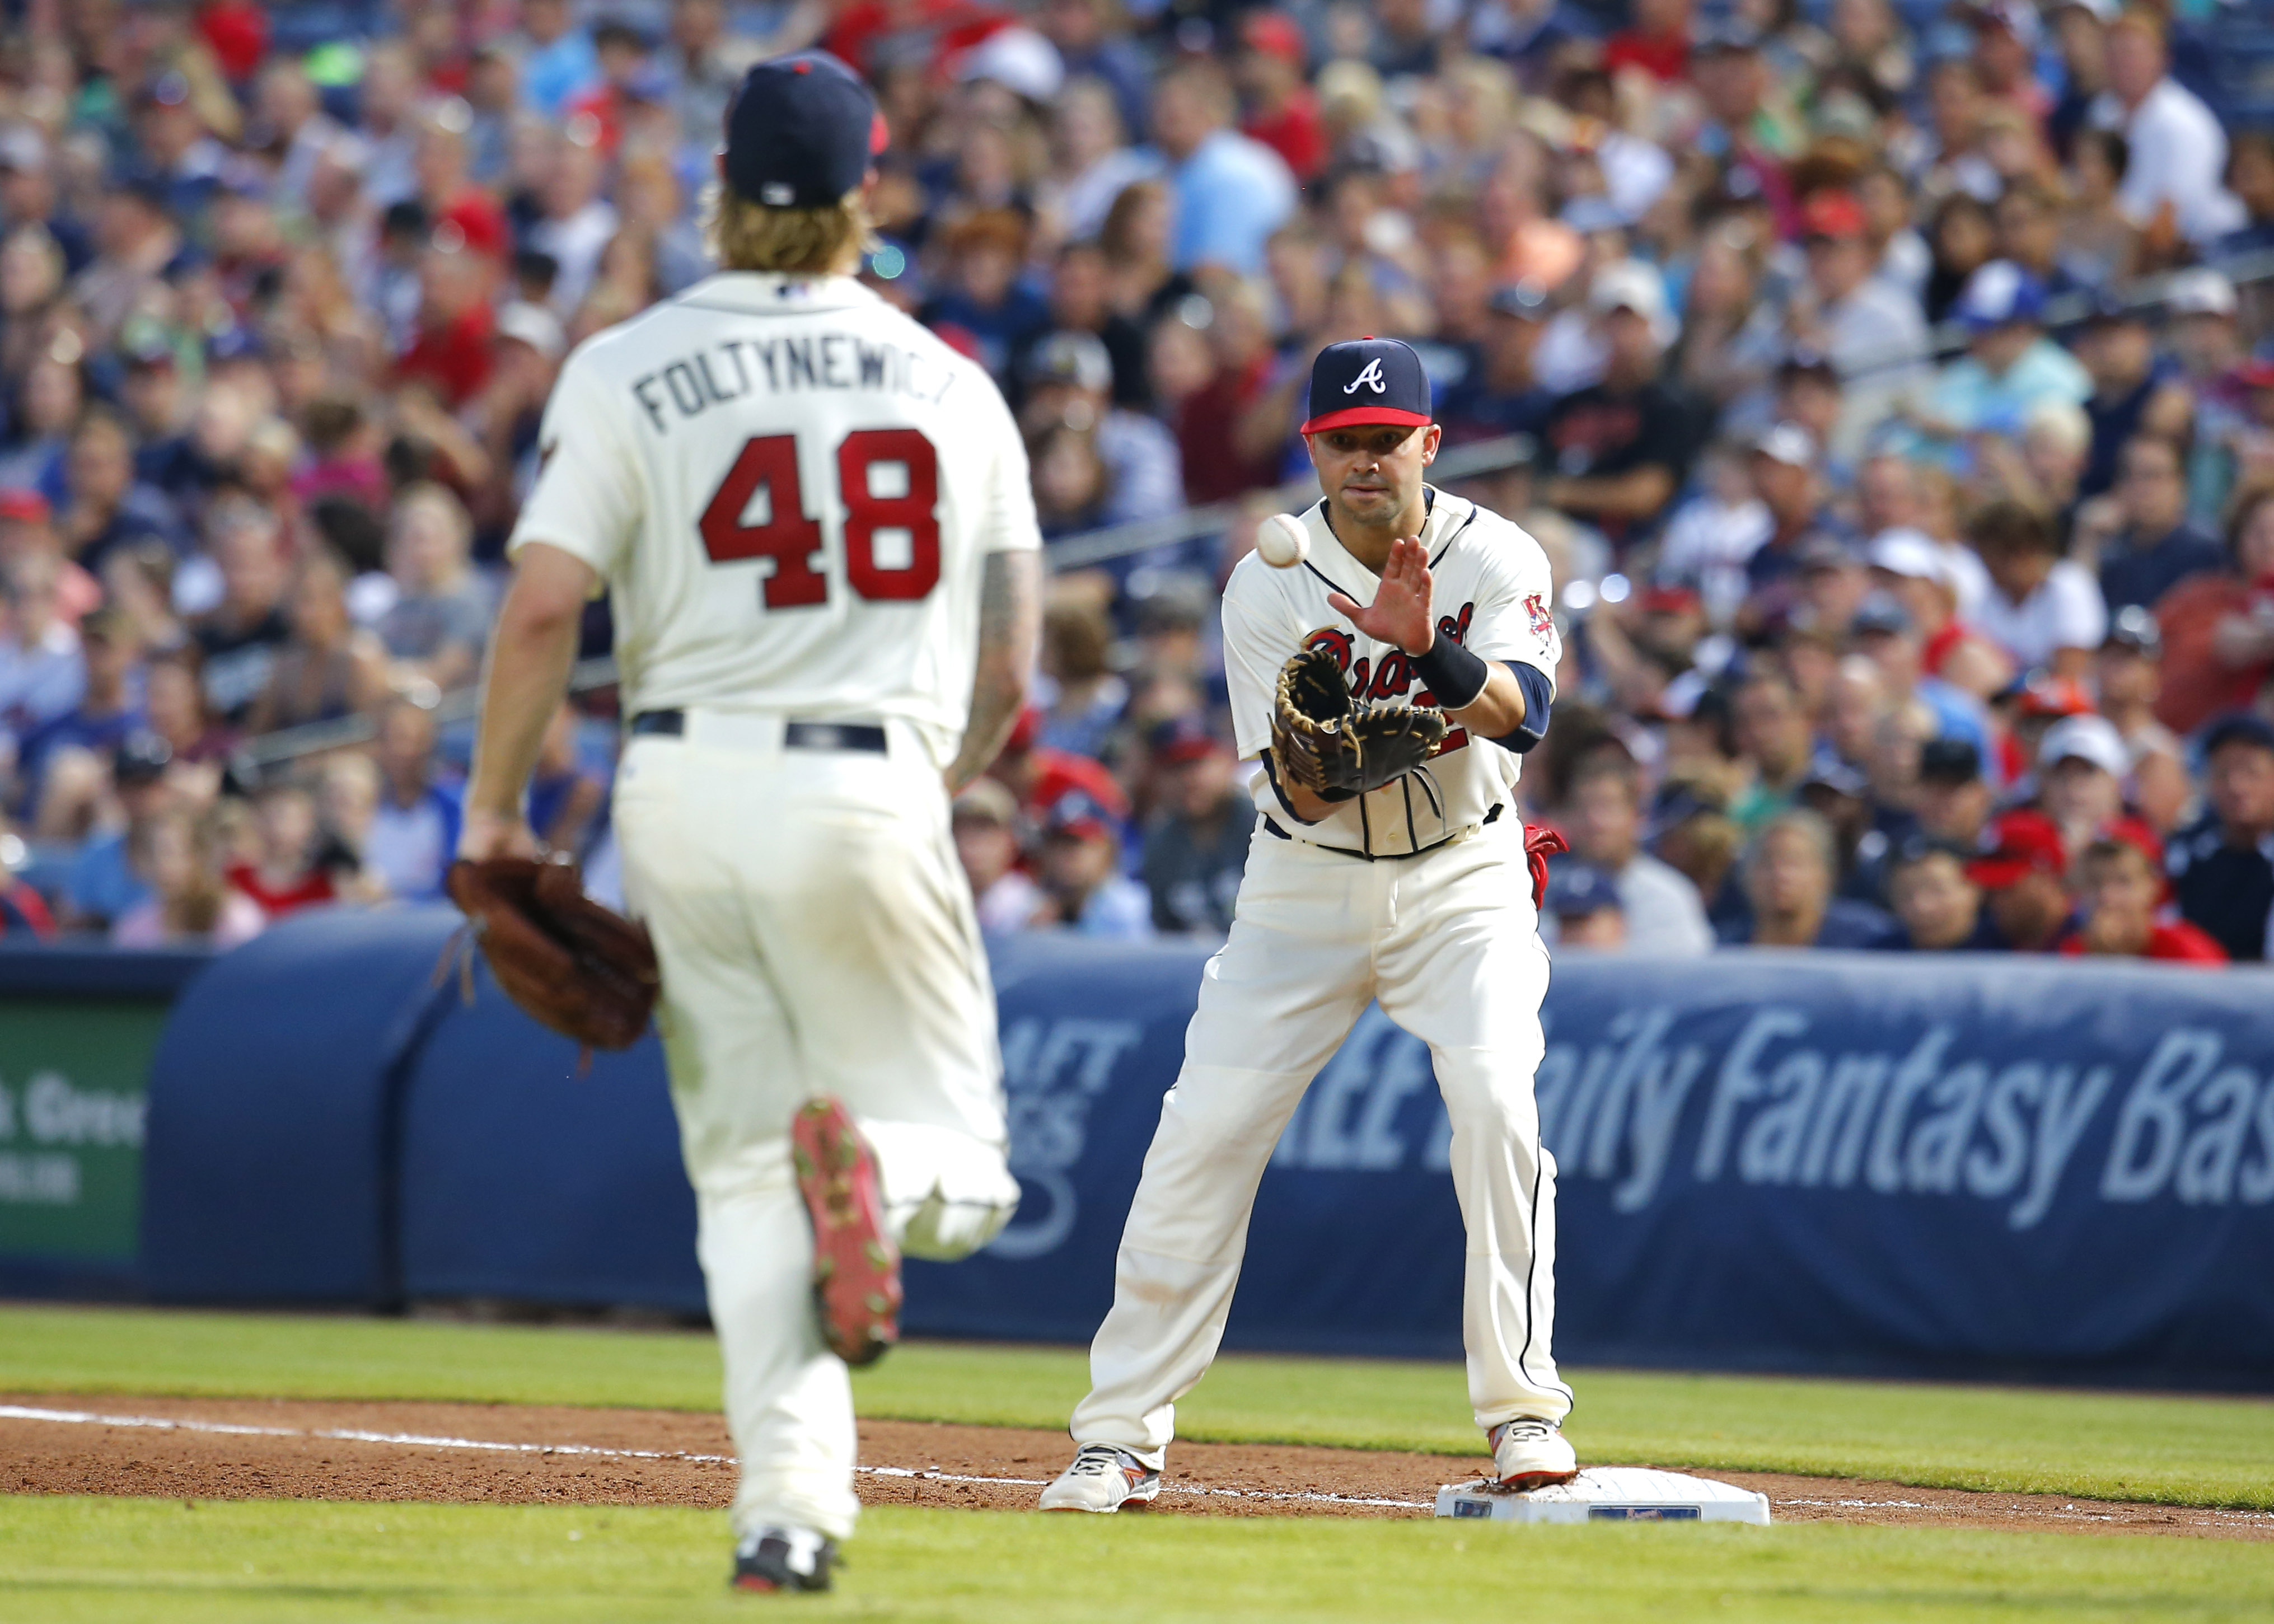 Atlanta Braves starting pitcher Mike Foltynewicz (48) tosses to first baseman Nick Swisher, right, for the out against Miami Marlins' Christian Yelich in the fifth inning of a baseball game Saturday, Aug. 8, 2015, in Atlanta. (AP Photo/Todd Kirkland)